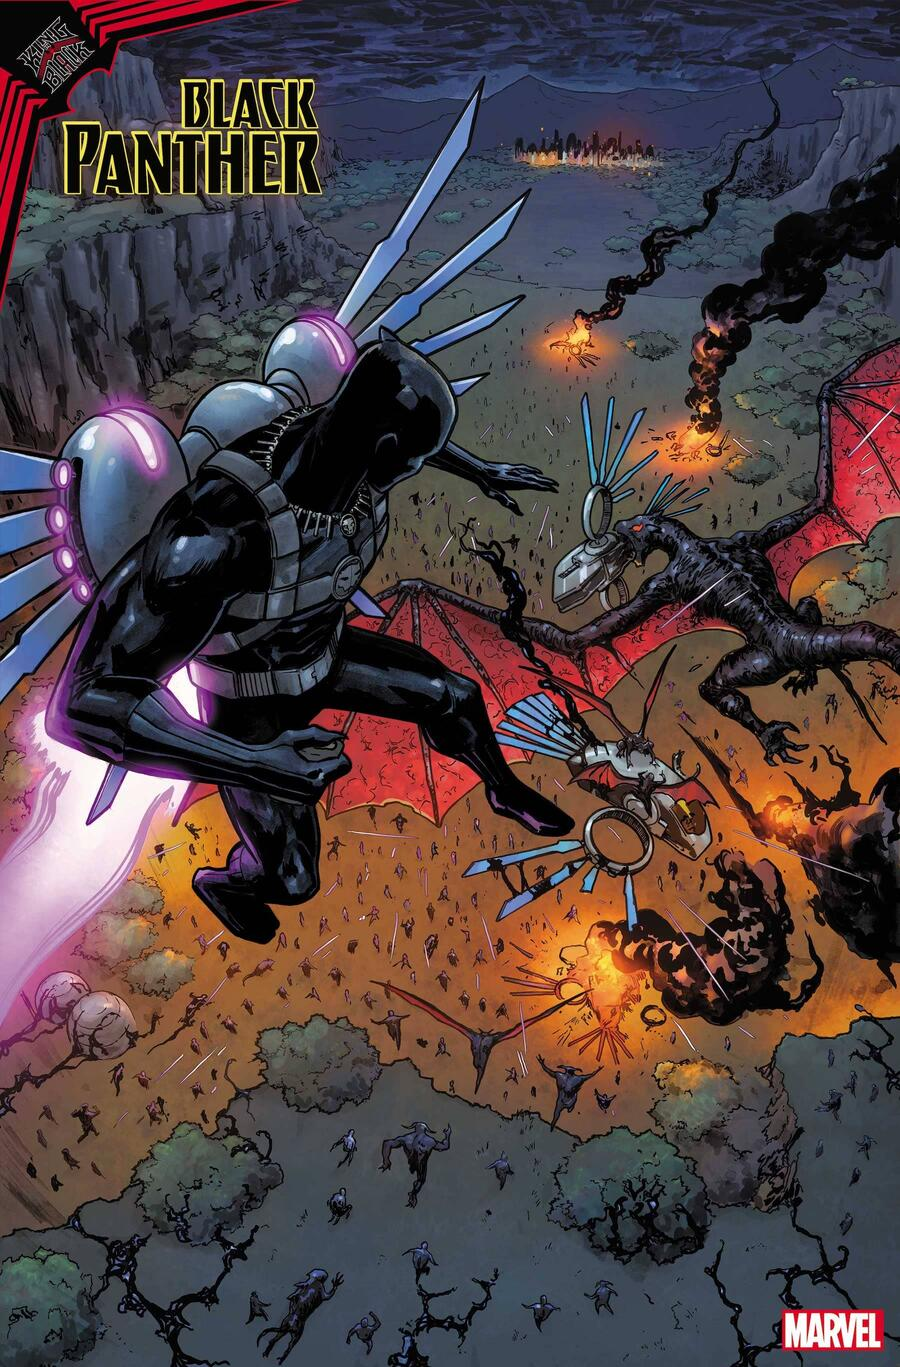 KING IN BLACK: BLACK PANTHER #1 preview art by Germán Peralta with colors by Jesus Aburtov